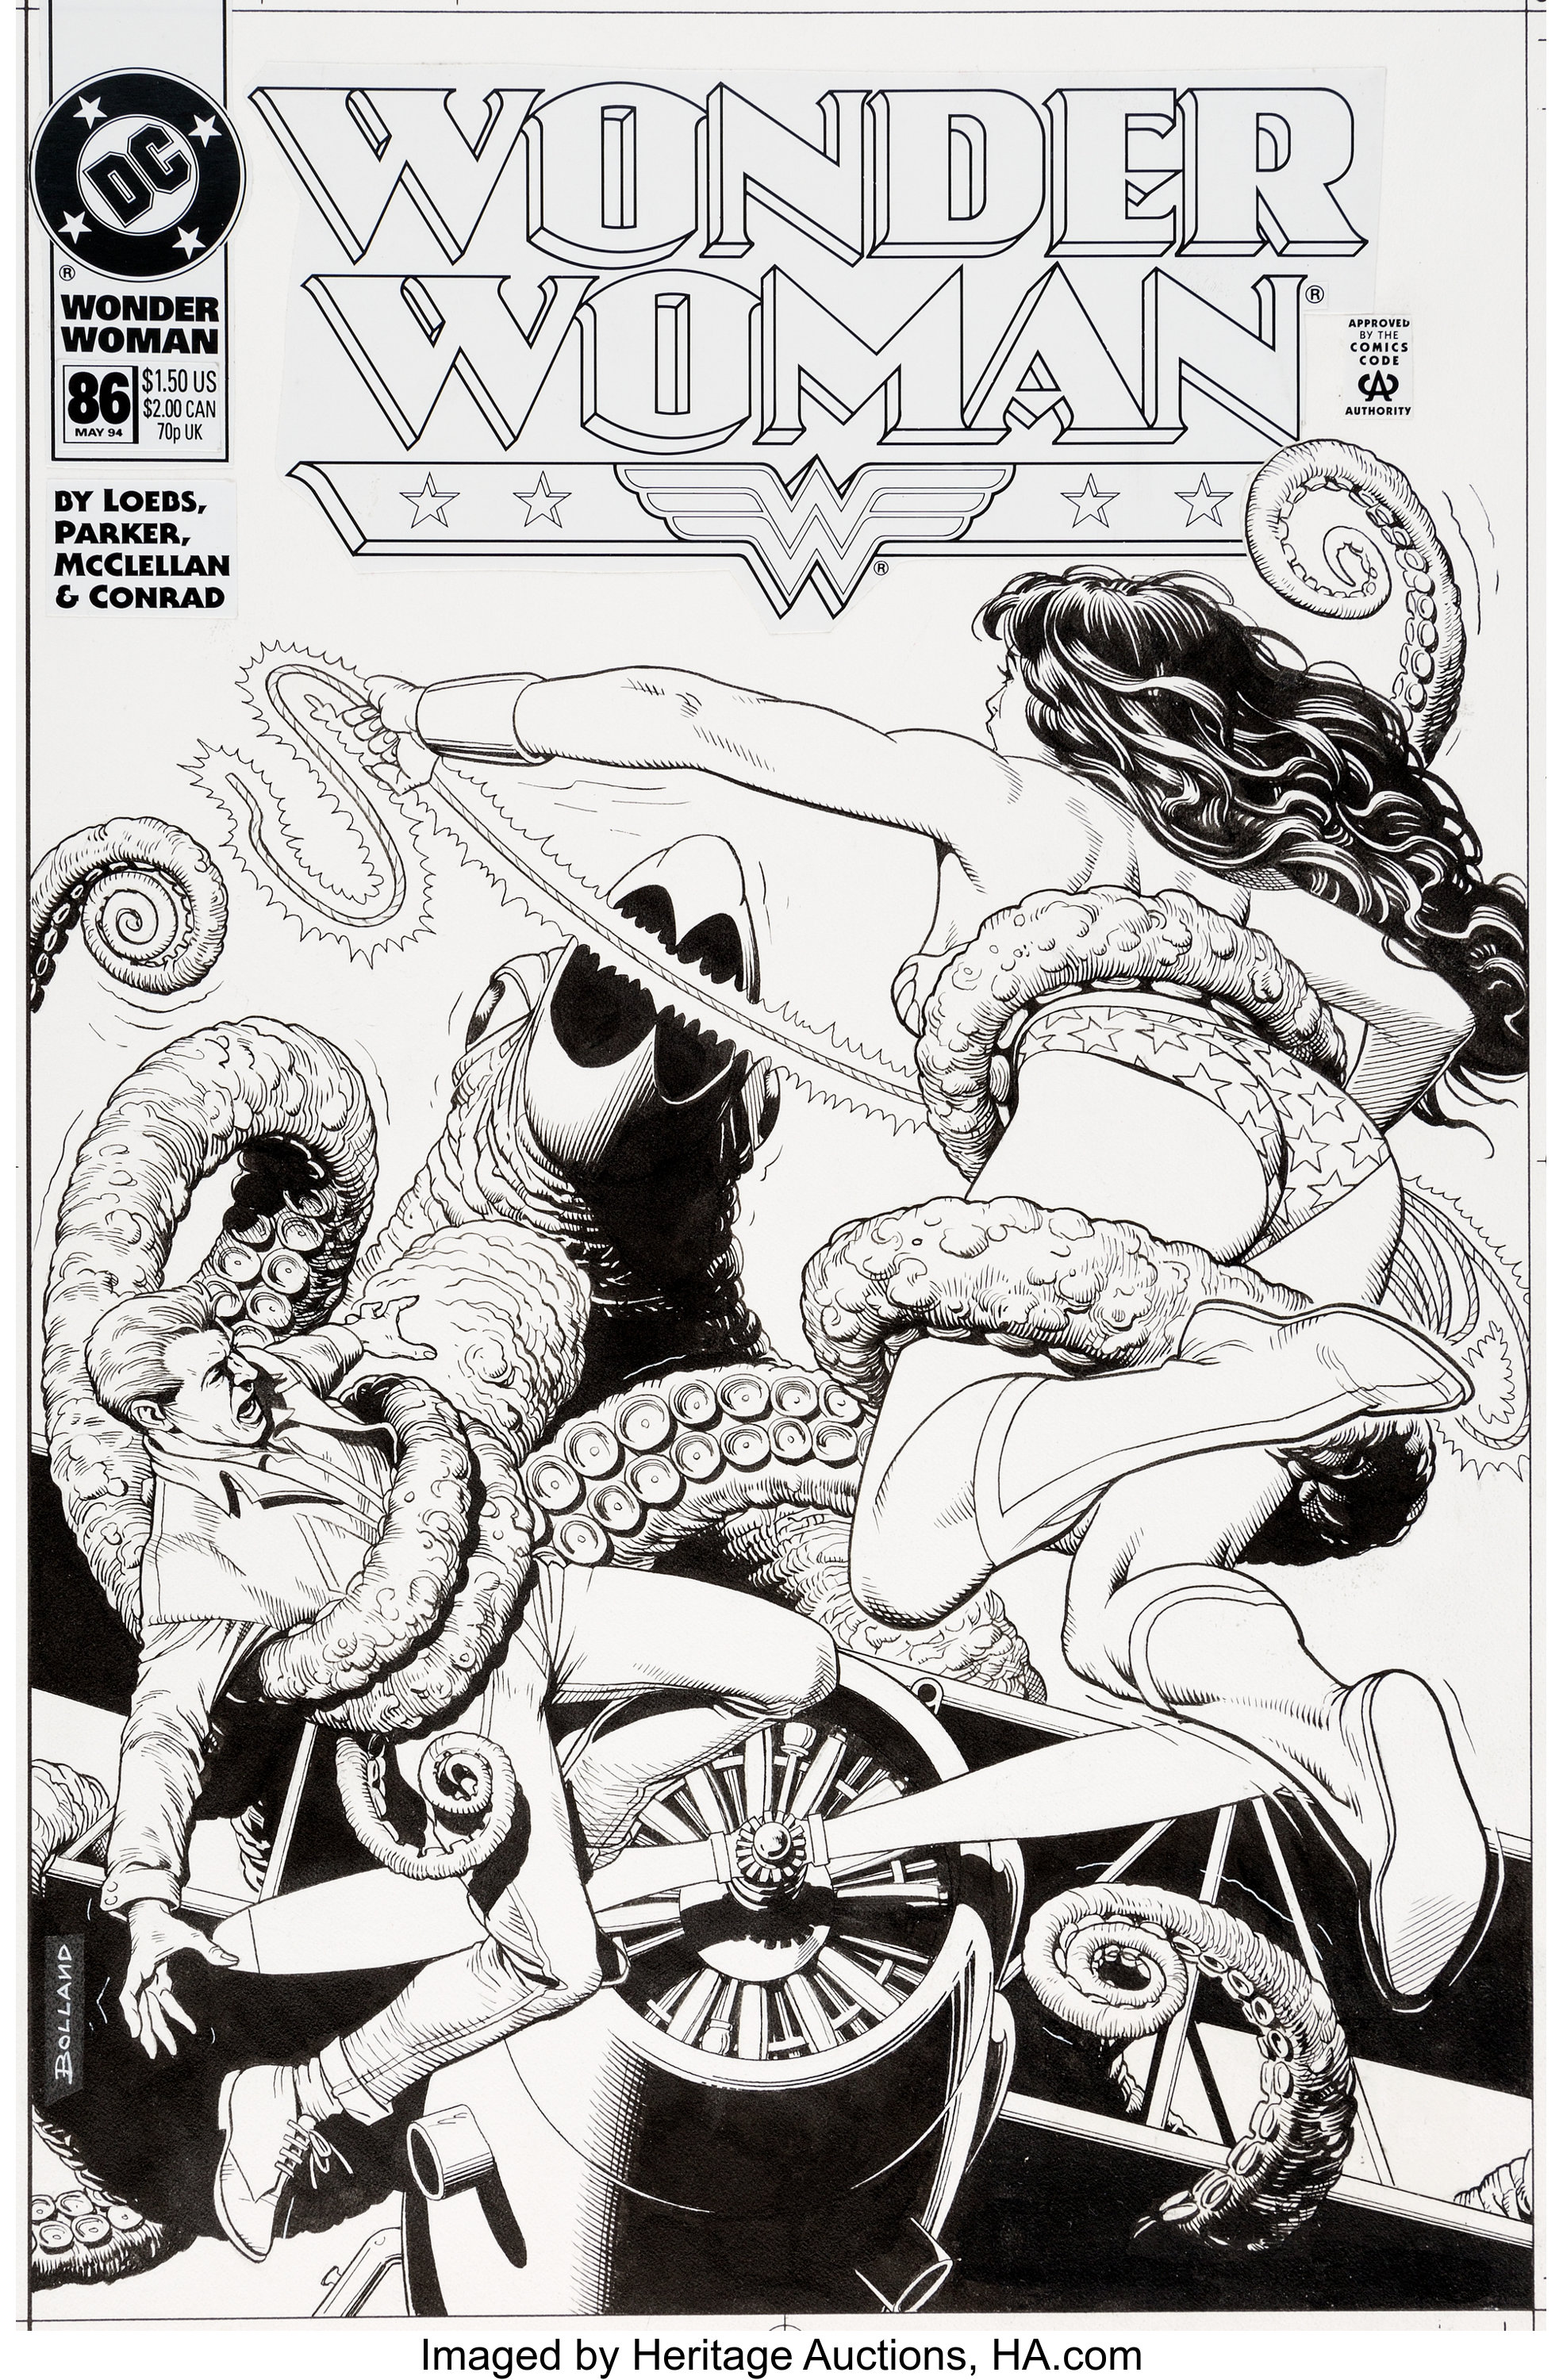 Original cover art by Brian Bolland from Wonder Woman #86, 1994